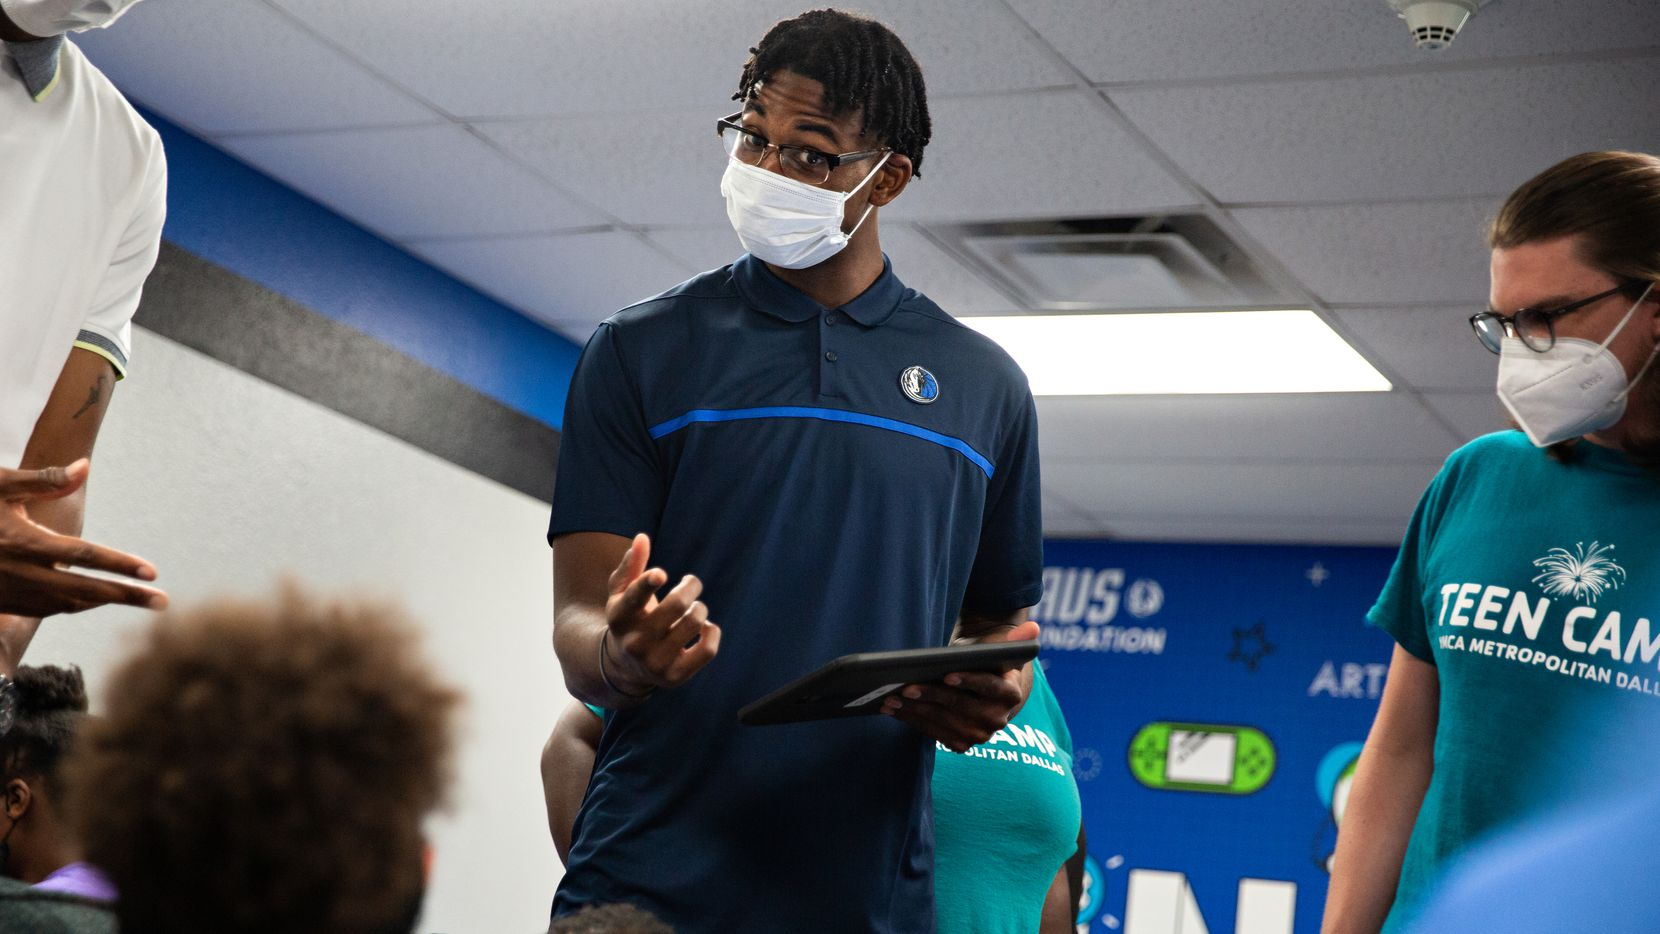 Dallas Mavericks guard Nate Hinton talks to YMCA Teen Camp kids at the Mavs Foundation's unveiling of its newest reading and learning center renovation at the Moorland YMCA at Oak Cliff on August 3, 2021.